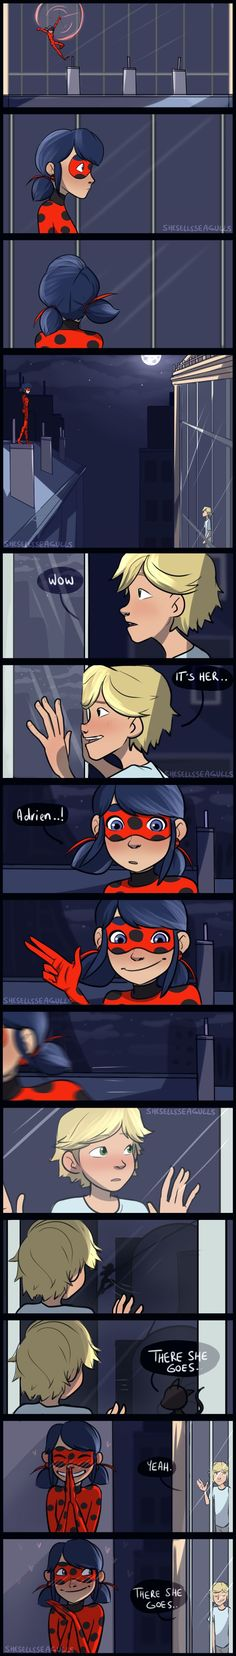 thereshegoes (ladybug comic) by she-sells-seagulls on DeviantArt Ladybug and Adrien Window wave Miraculous: Ladybug and Chat Noir Cat Noir Lady Bug, Comics Ladybug, Meraculous Ladybug, Ladybug Cartoon, Cn Fanart, Tikki And Plagg, Ladybug Und Cat Noir, Kevedd, Catty Noir